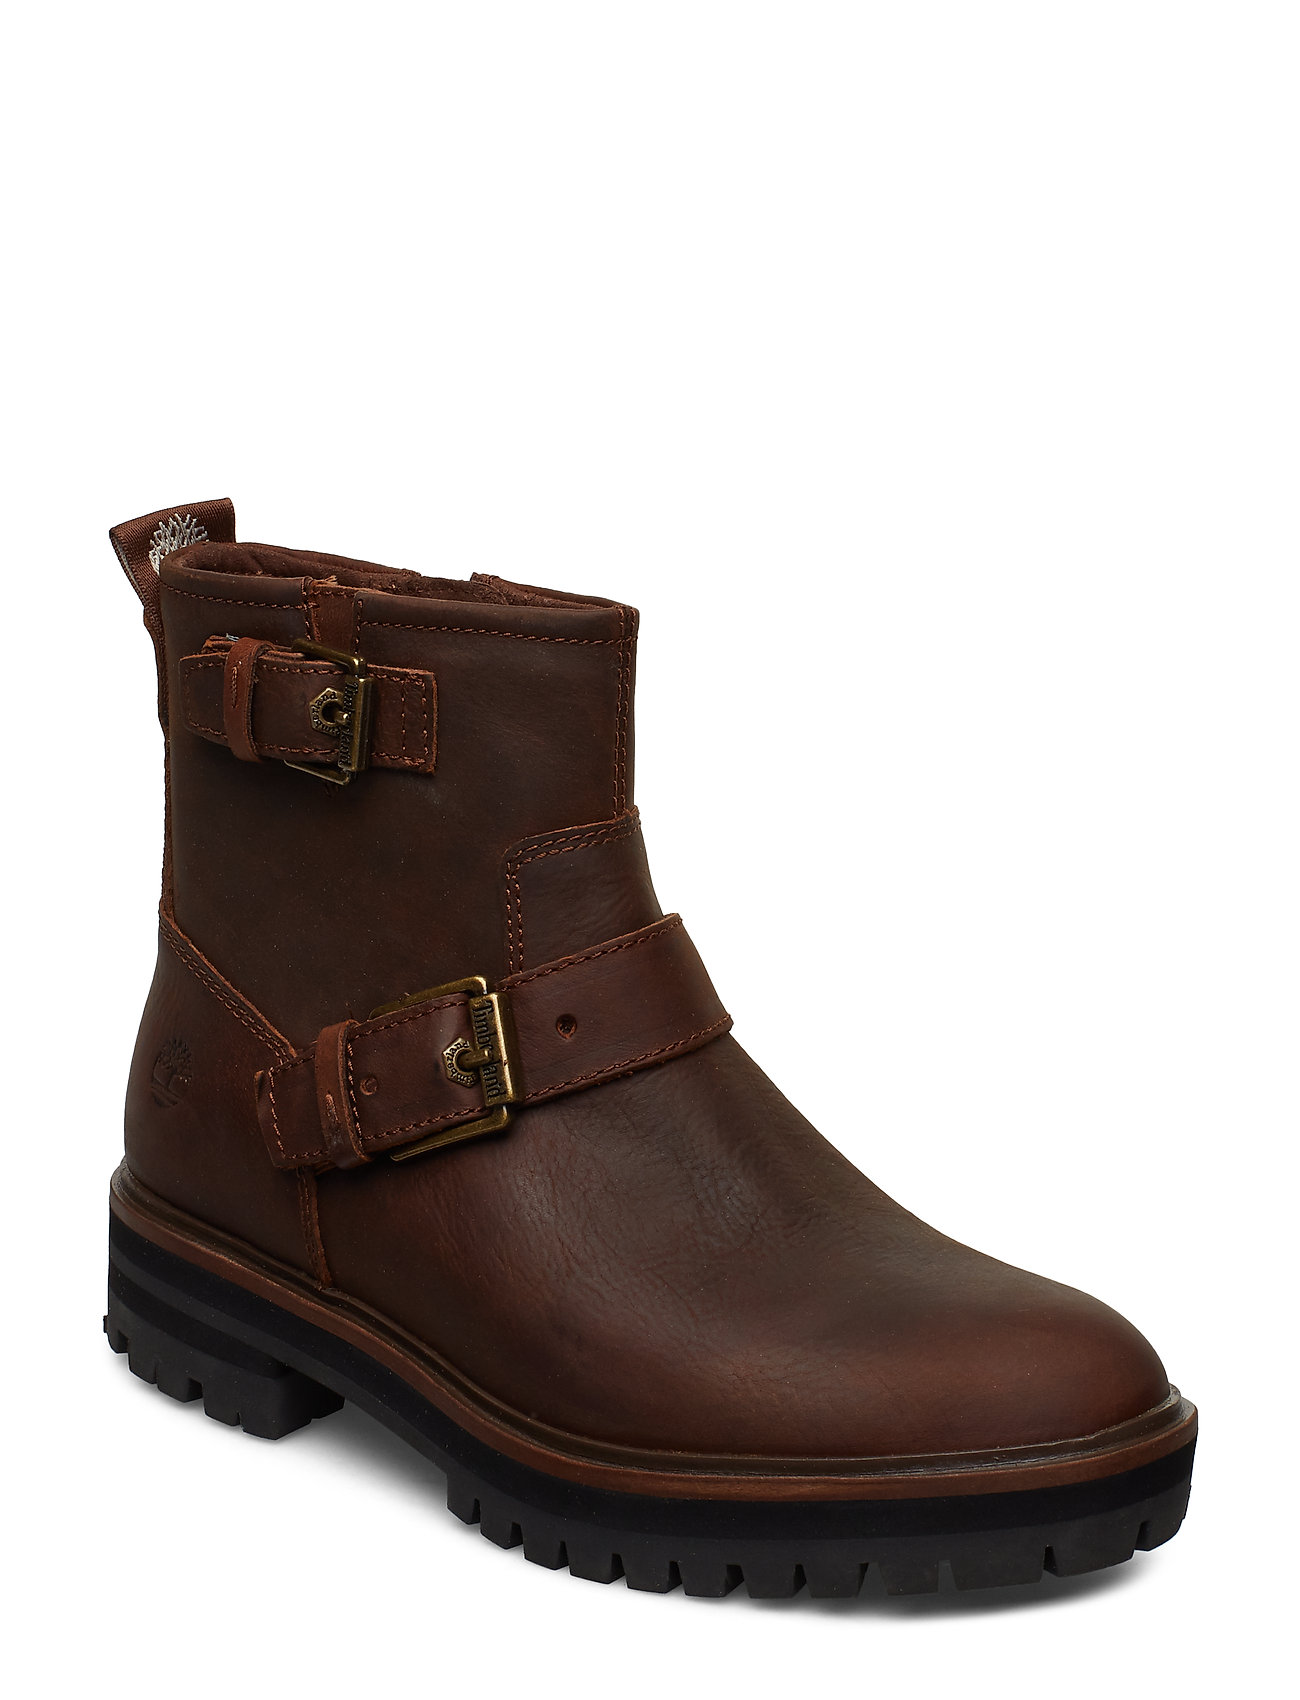 TIMBERLAND London Square Biker Shoes Boots Ankle Boots Ankle Boots Flat Heel Braun TIMBERLAND